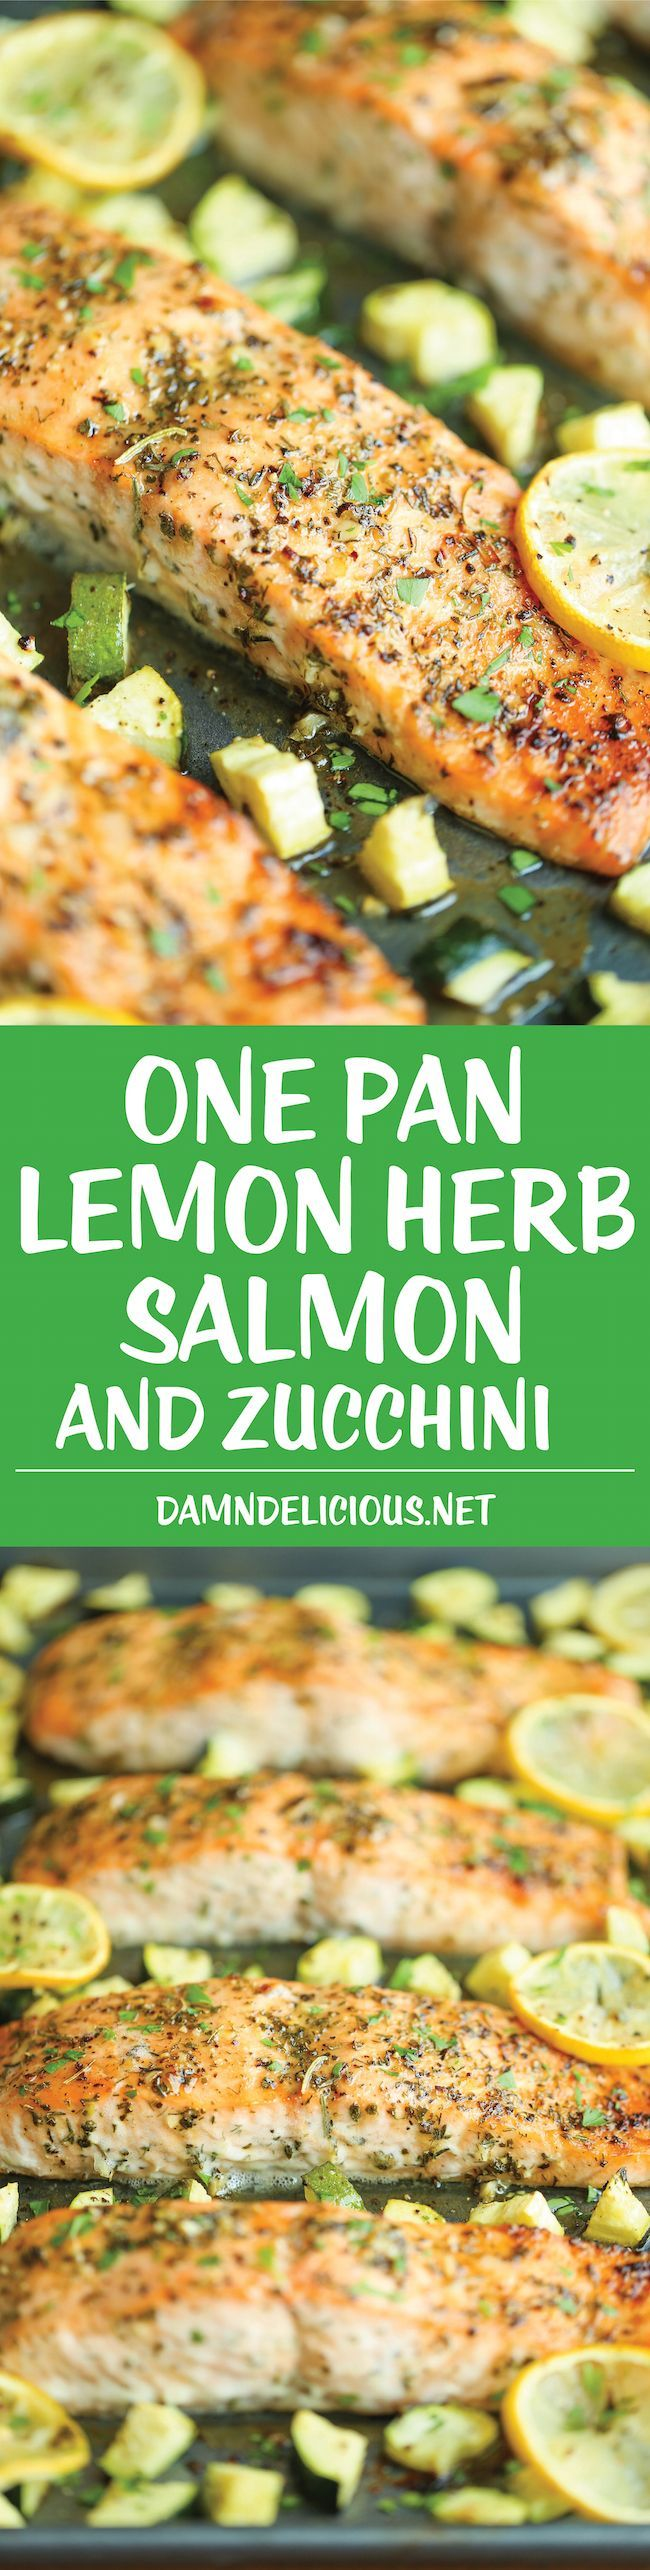 One Pan Lemon Herb Salmon and Zucchini - Quick, easy, and all made on a single pan. And the salmon is packed with so much flavor. It doesn't get any easier! I used 1/2 the amt of brown sugar since I don't like things too sweet. And I didn't have Rosemary so didn't use any and it was still great!